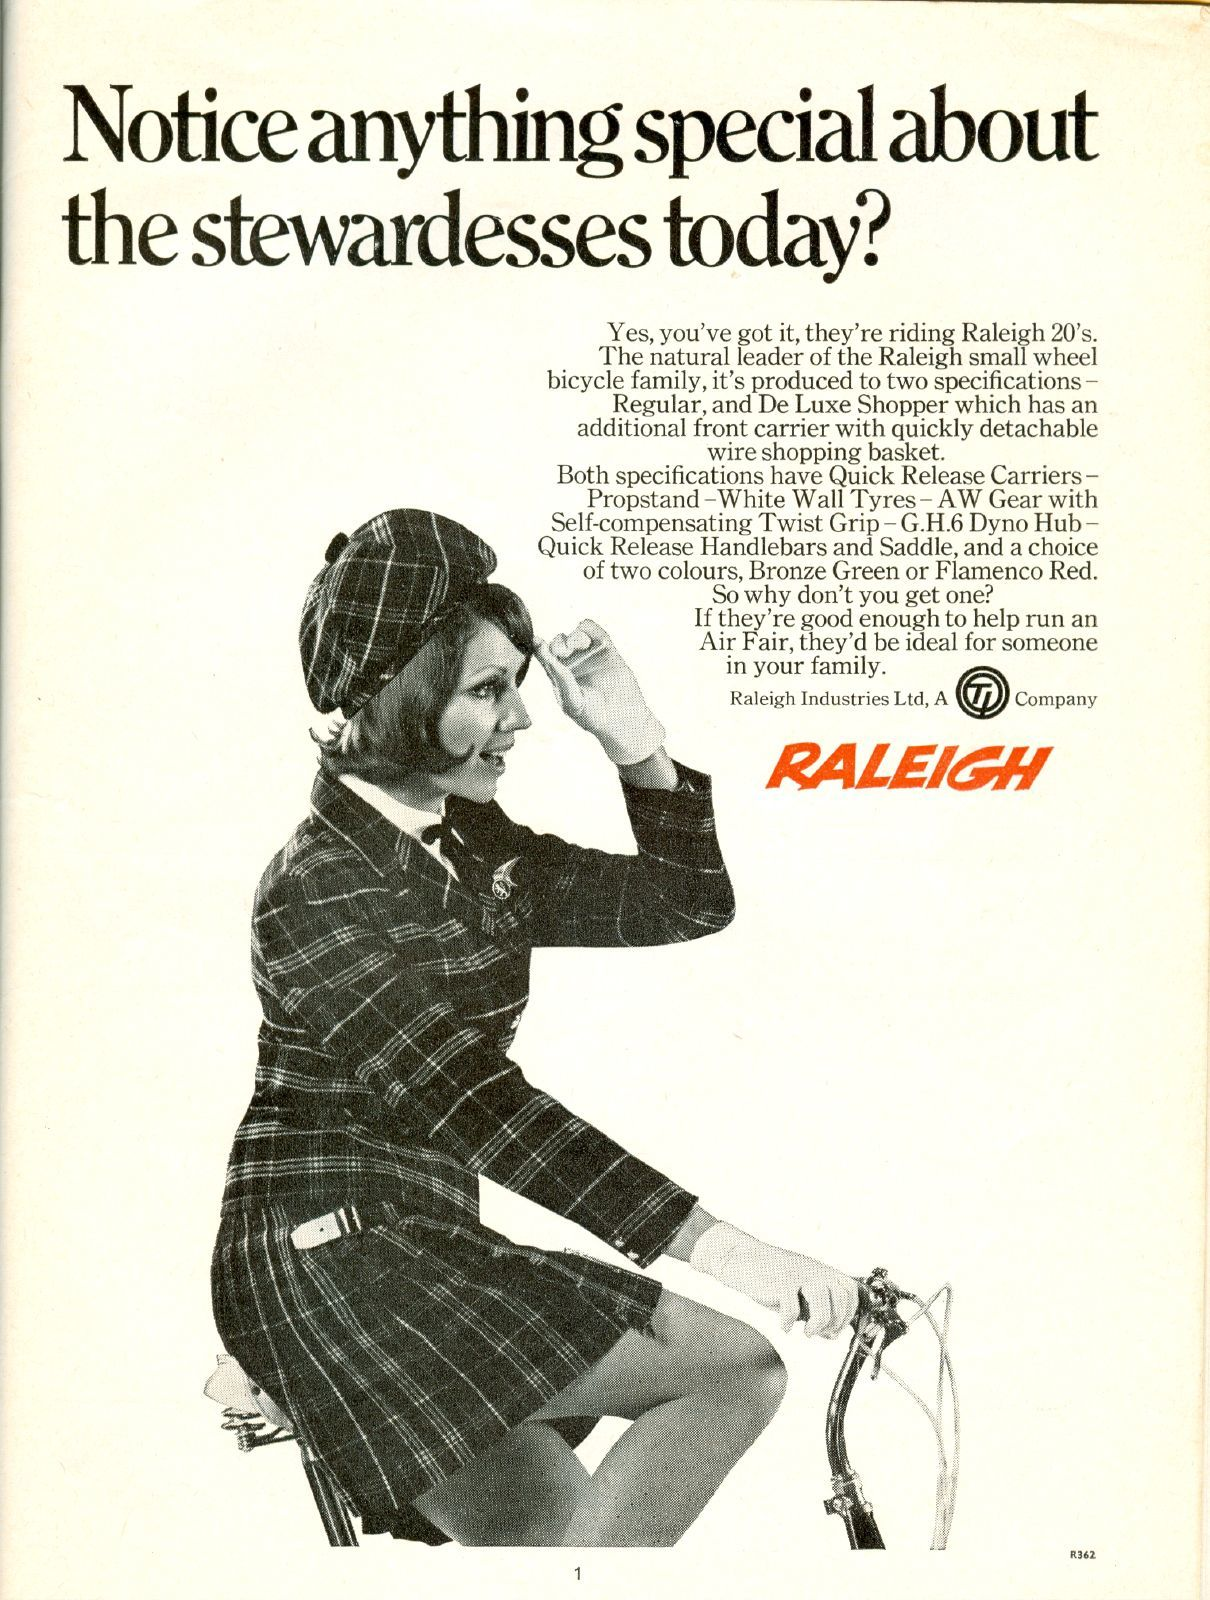 The Rise And Fall Of Raleigh 100 Years Of Ads